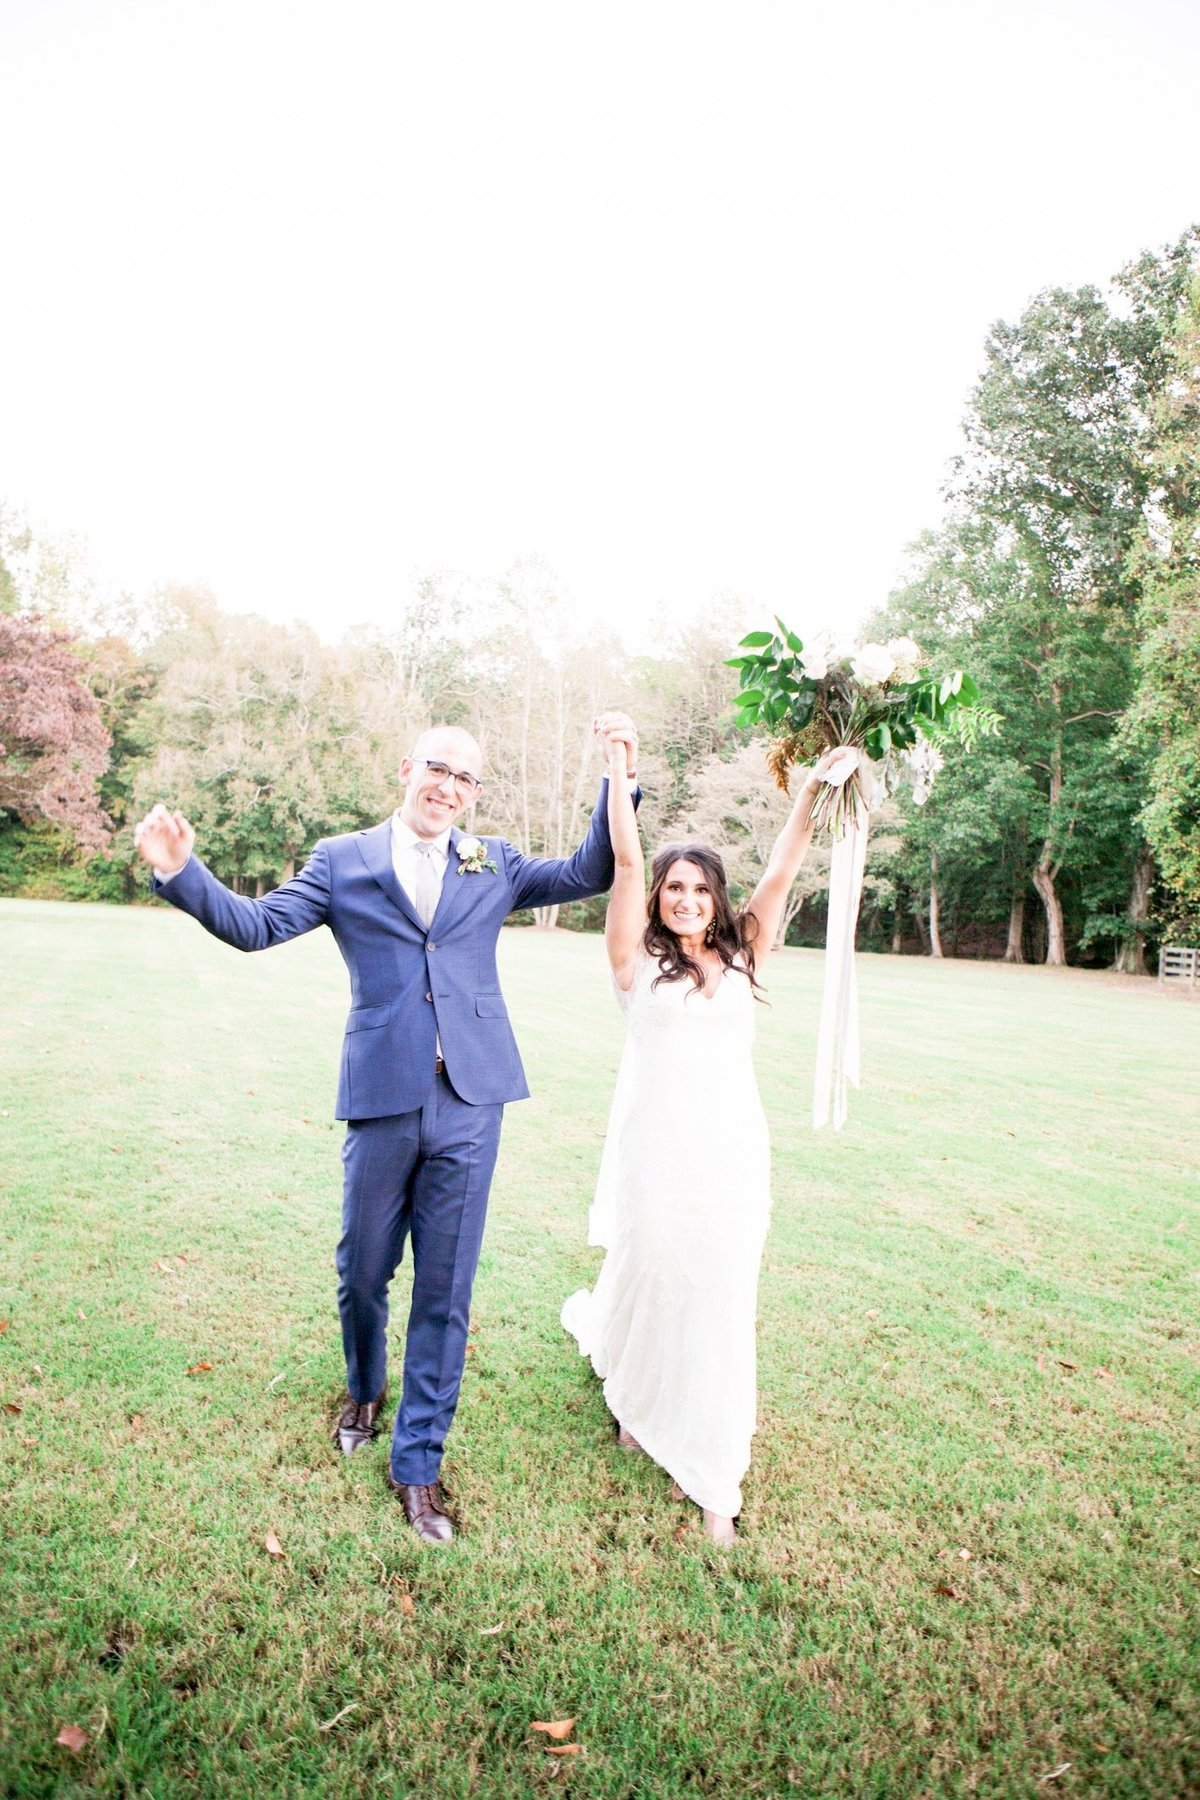 Windwood_Equestrian_Weddings__birmingham_Alabama_bride_outddor_farm_venue298